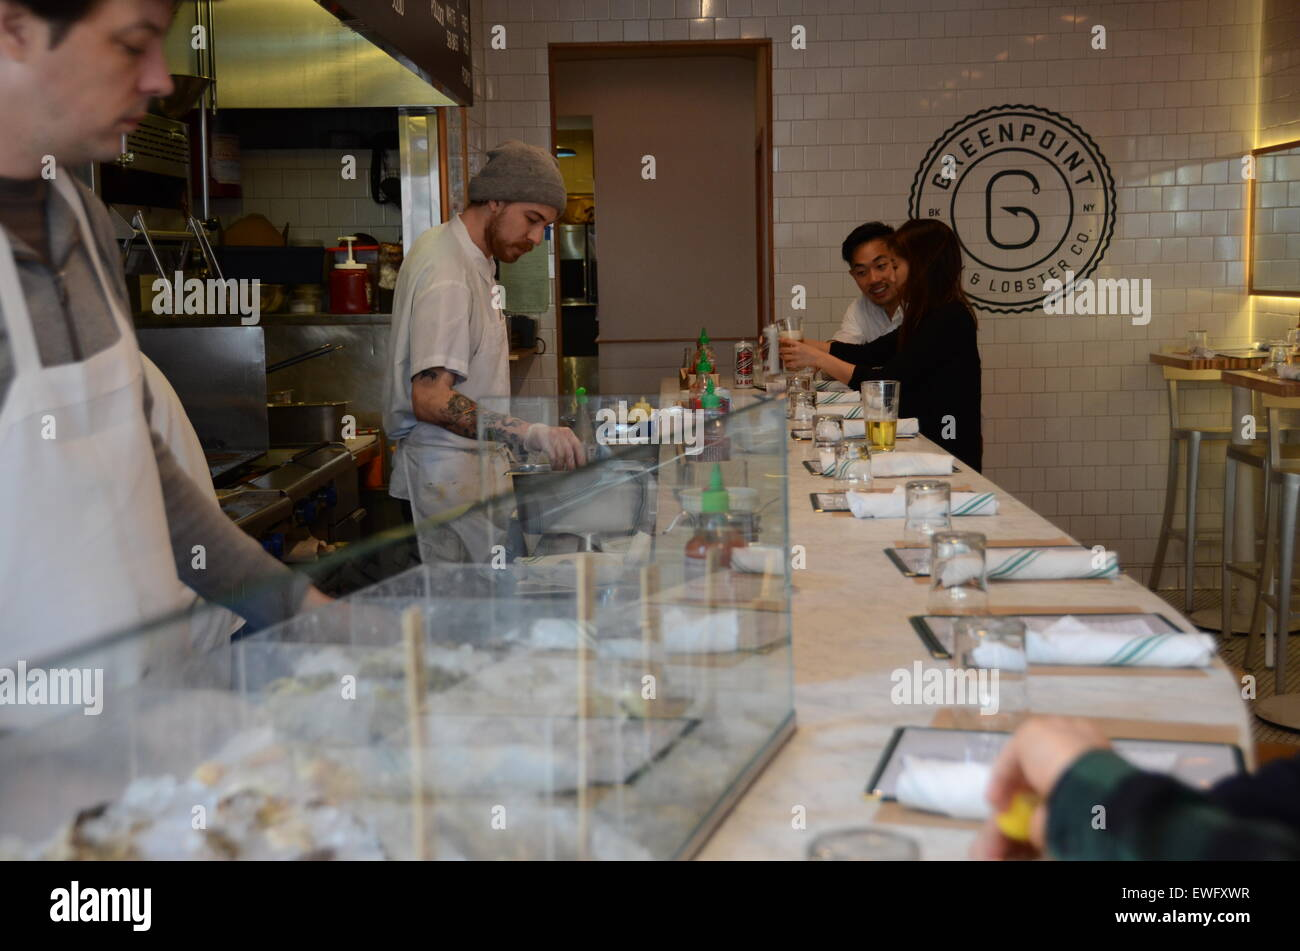 greenpoint fish and lobster compnay nassau avenue brooklyn new york - Stock Image